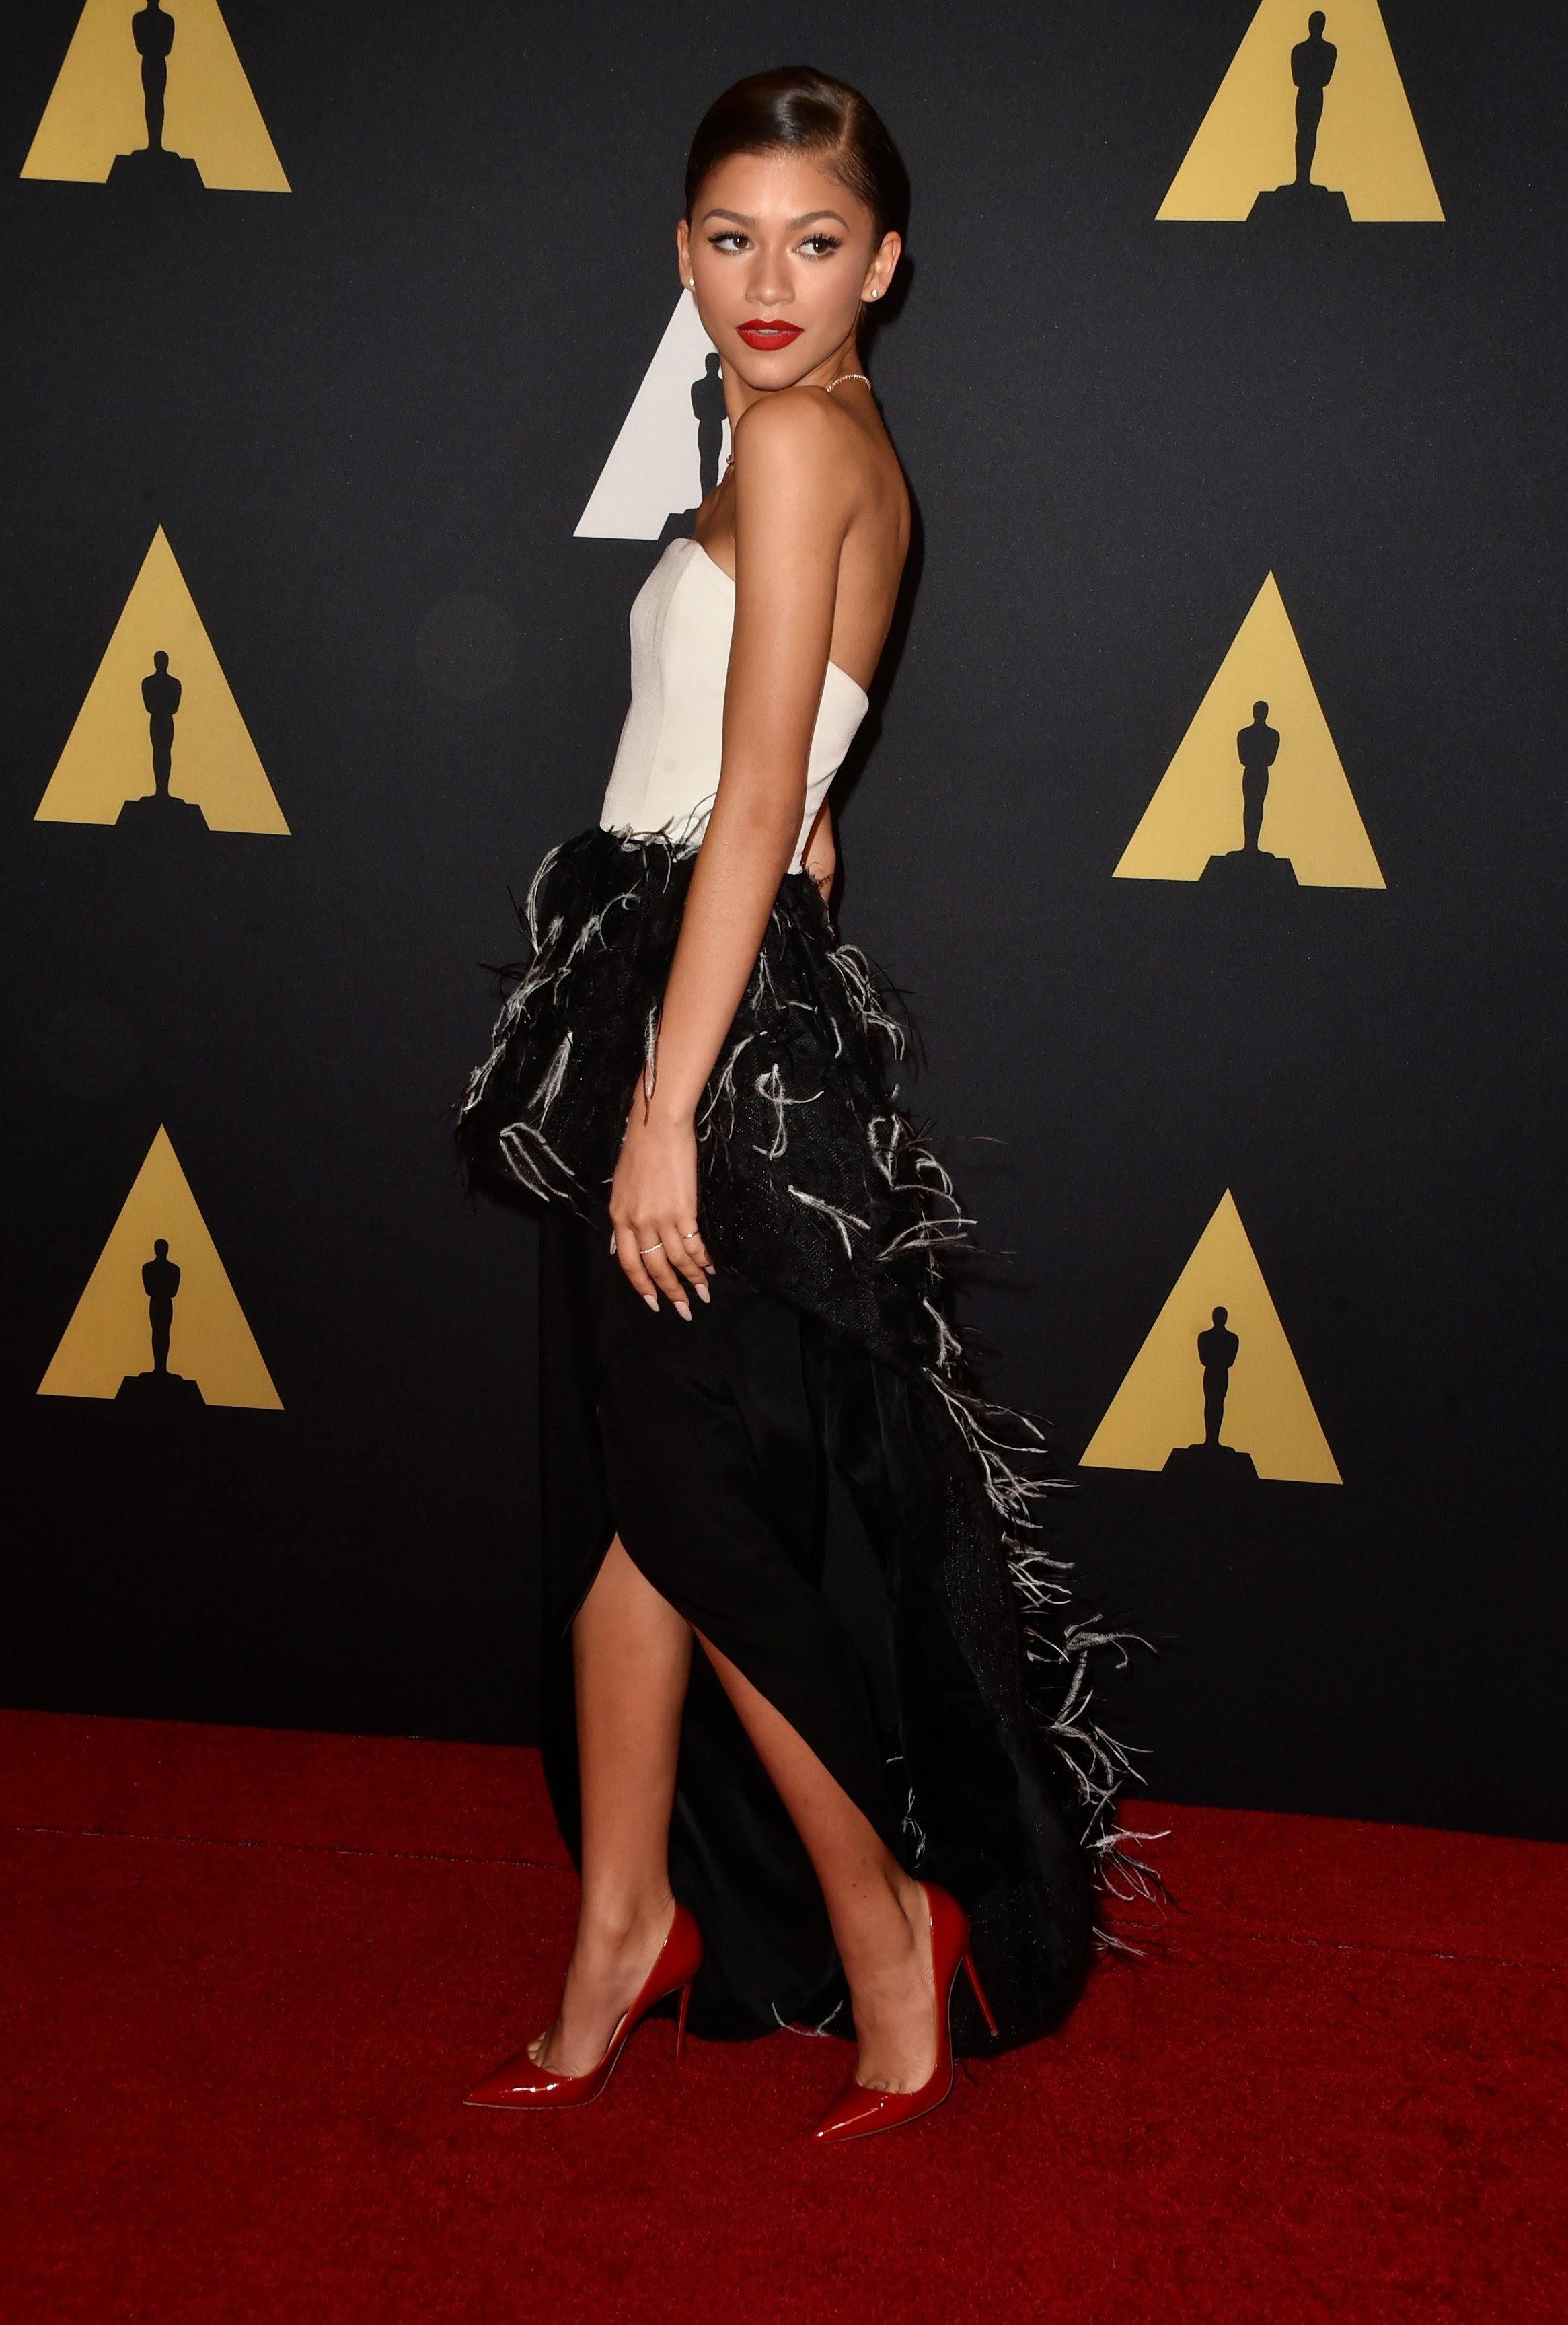 The Toe Cleavage Blog: Z is for Zendaya